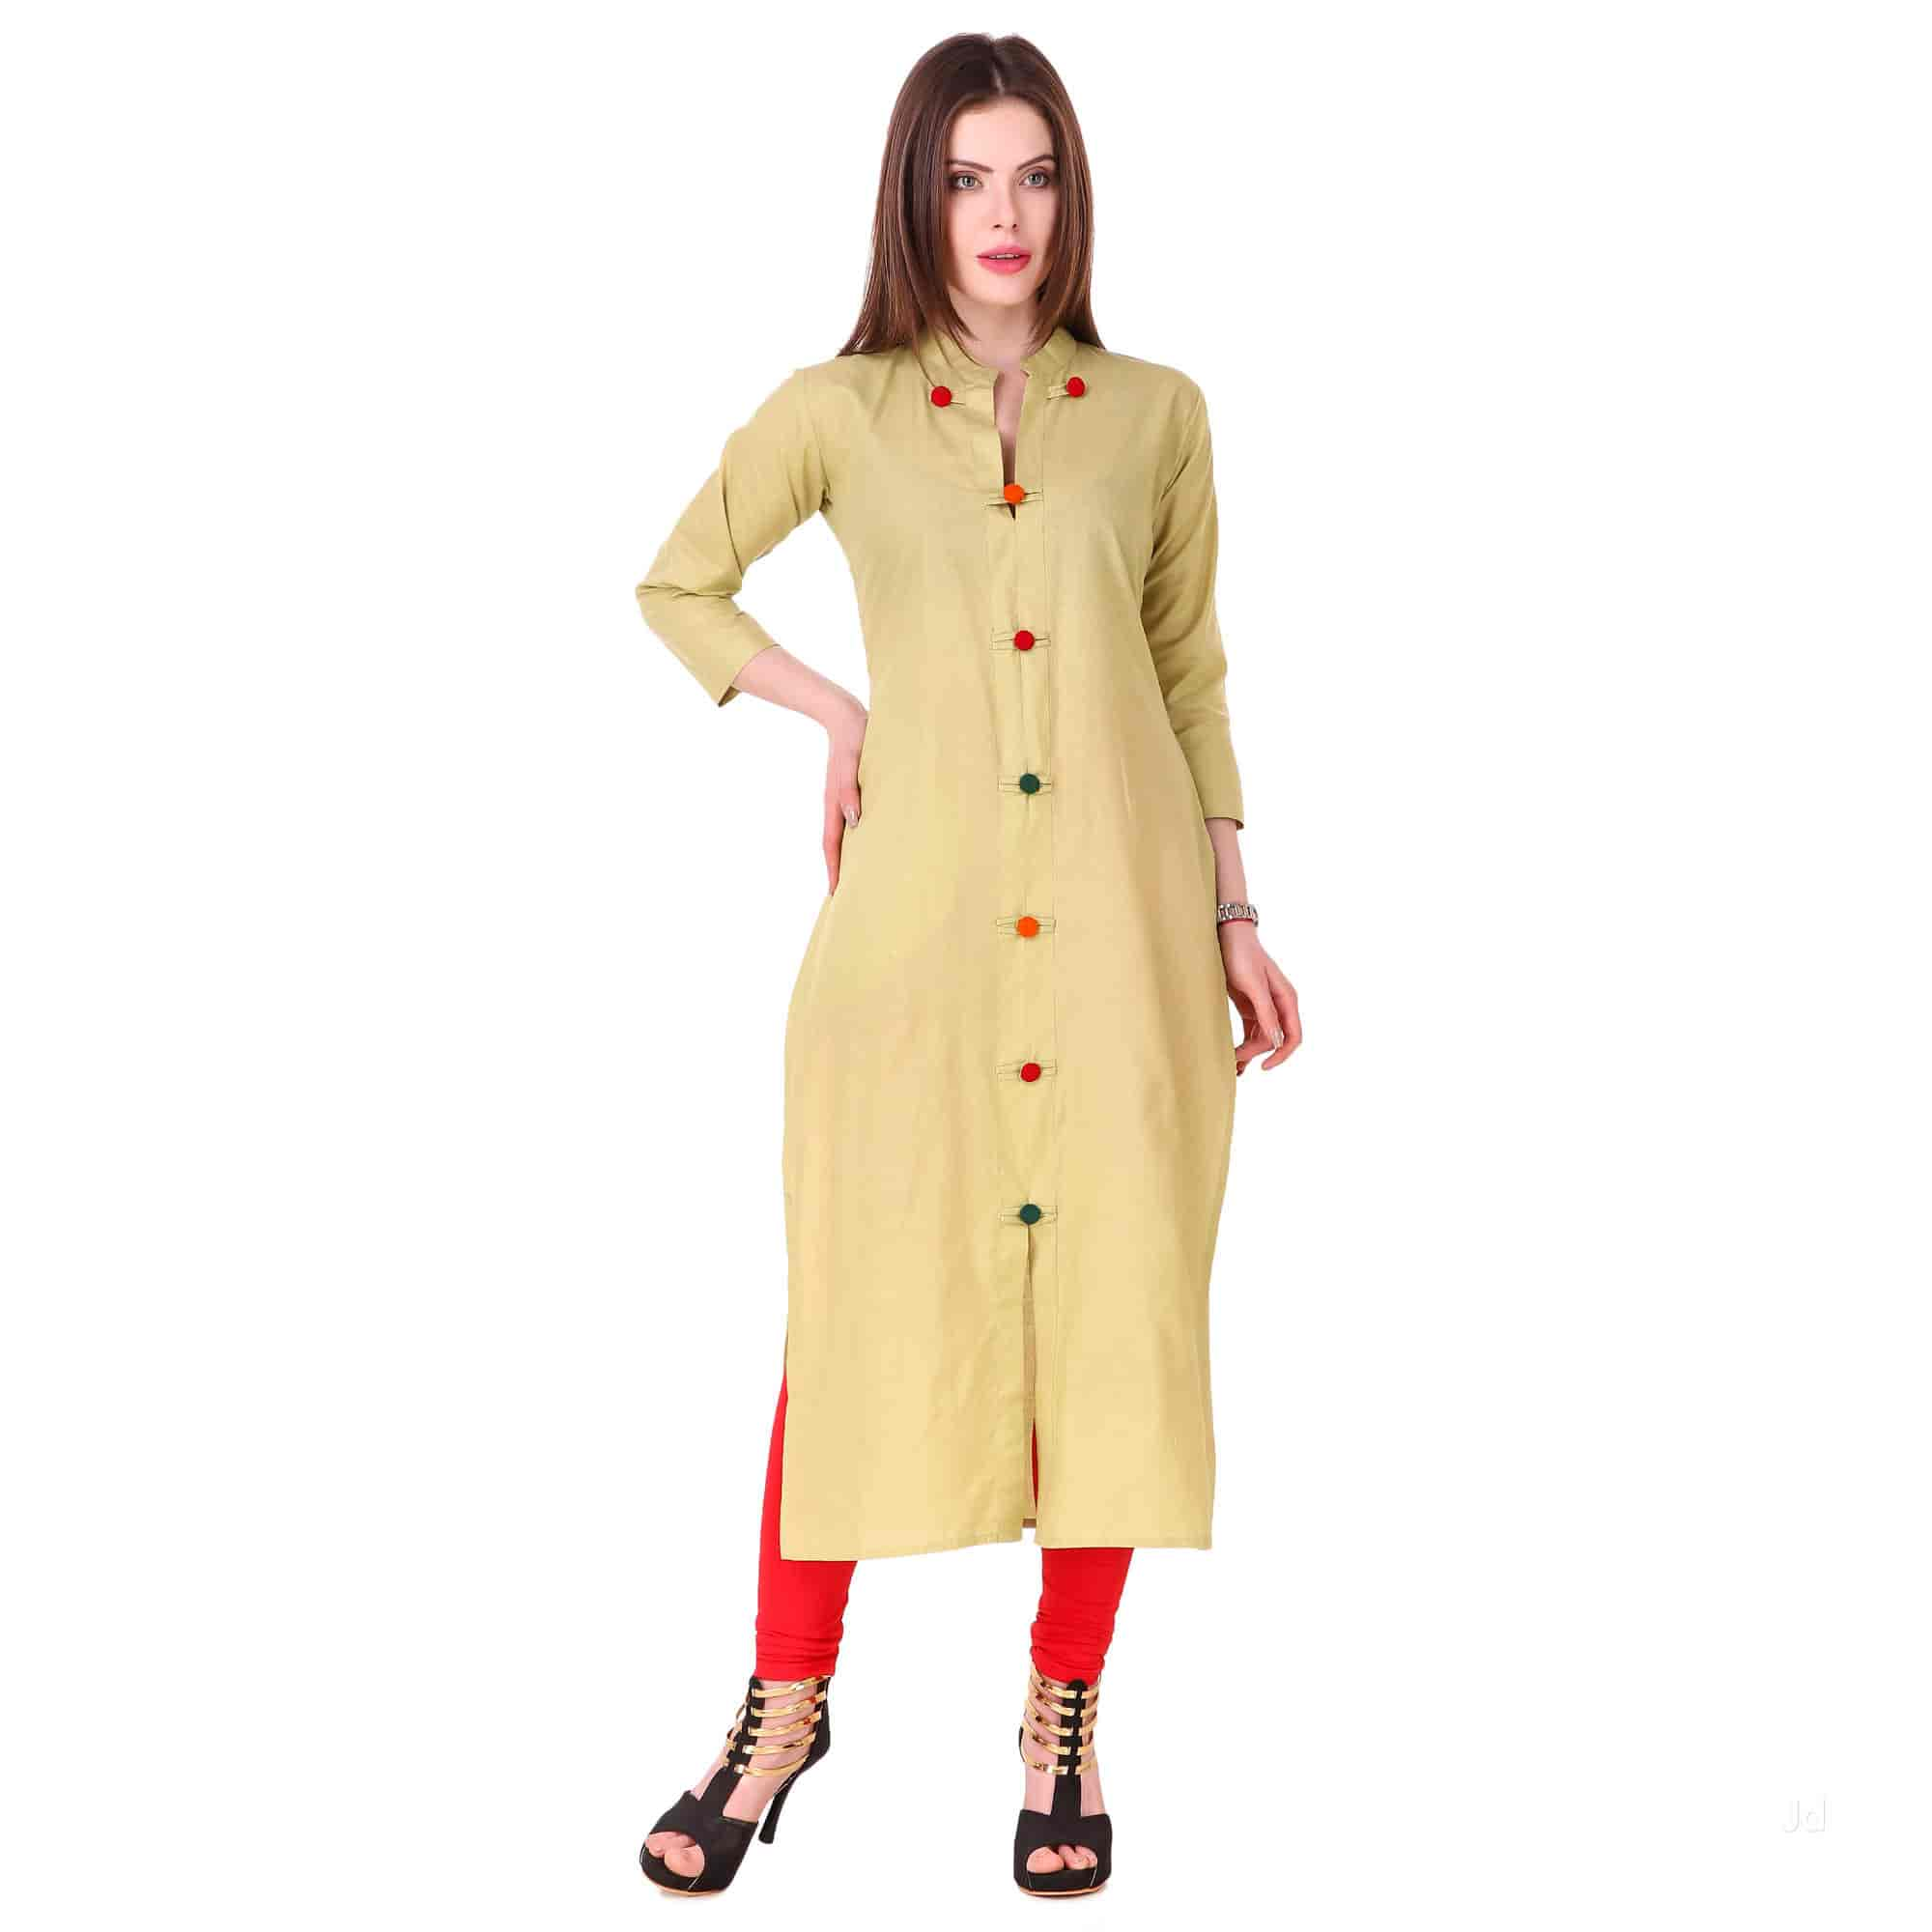 Trench Coat Meaning In Bengali Tradingbasis